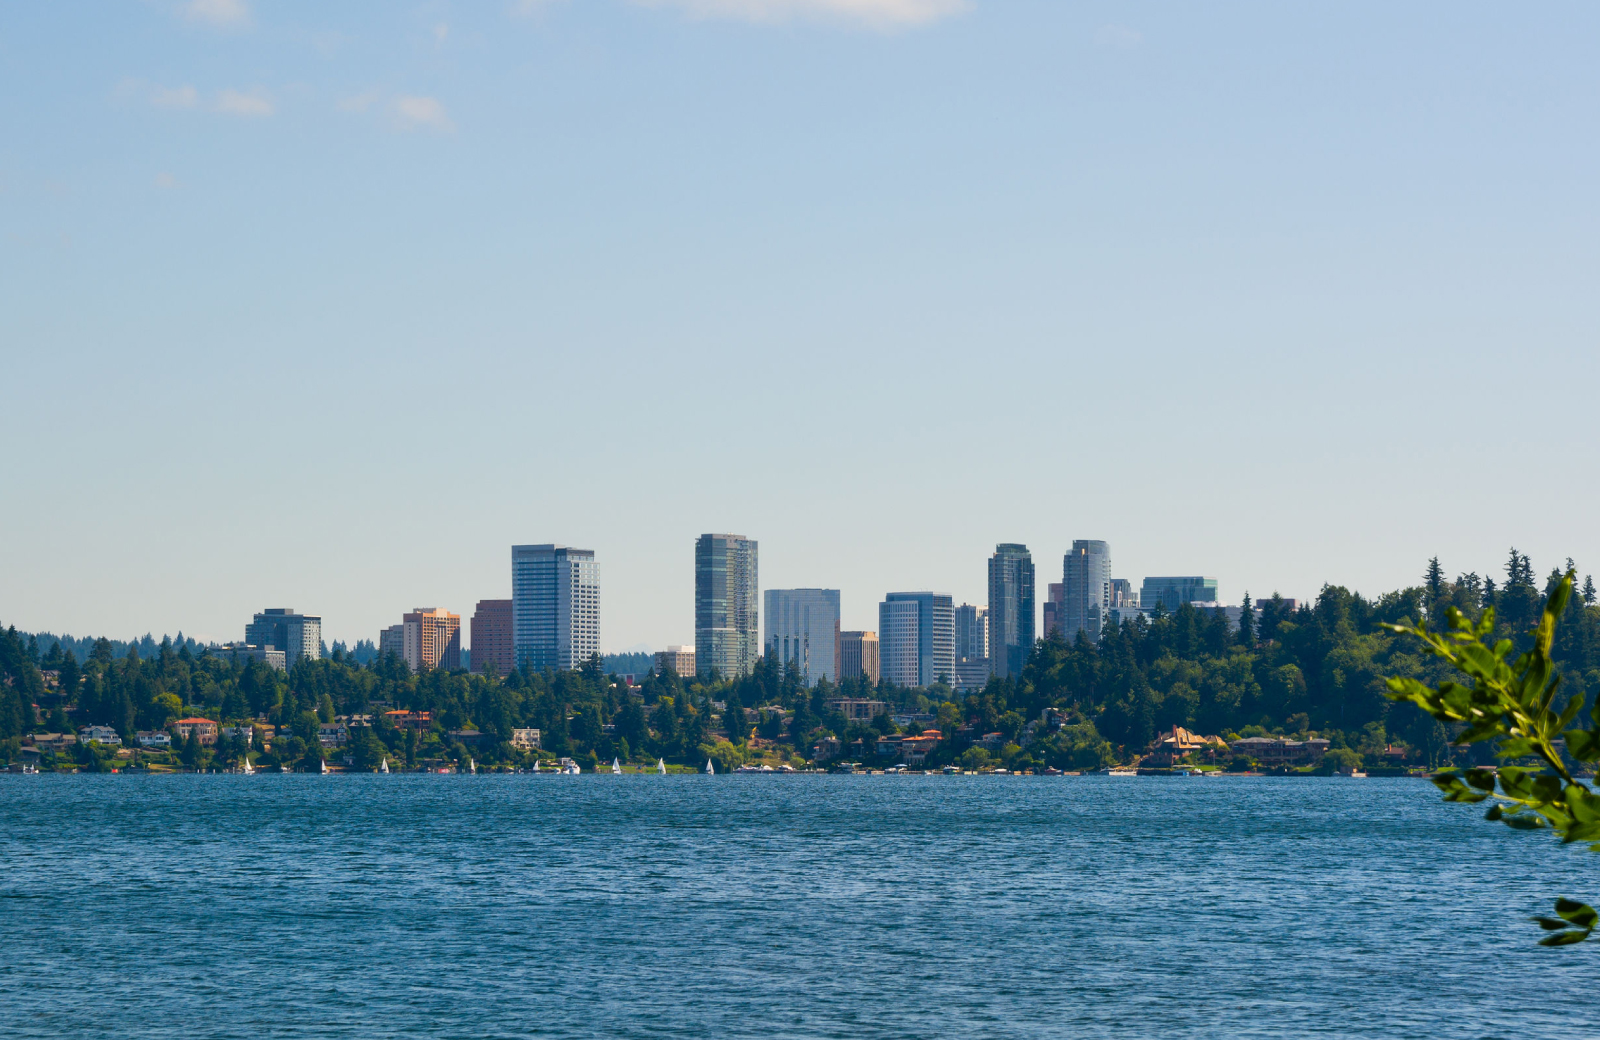 waterfront view of Bellevue Downtown City skyline - Hyde Square Apartments